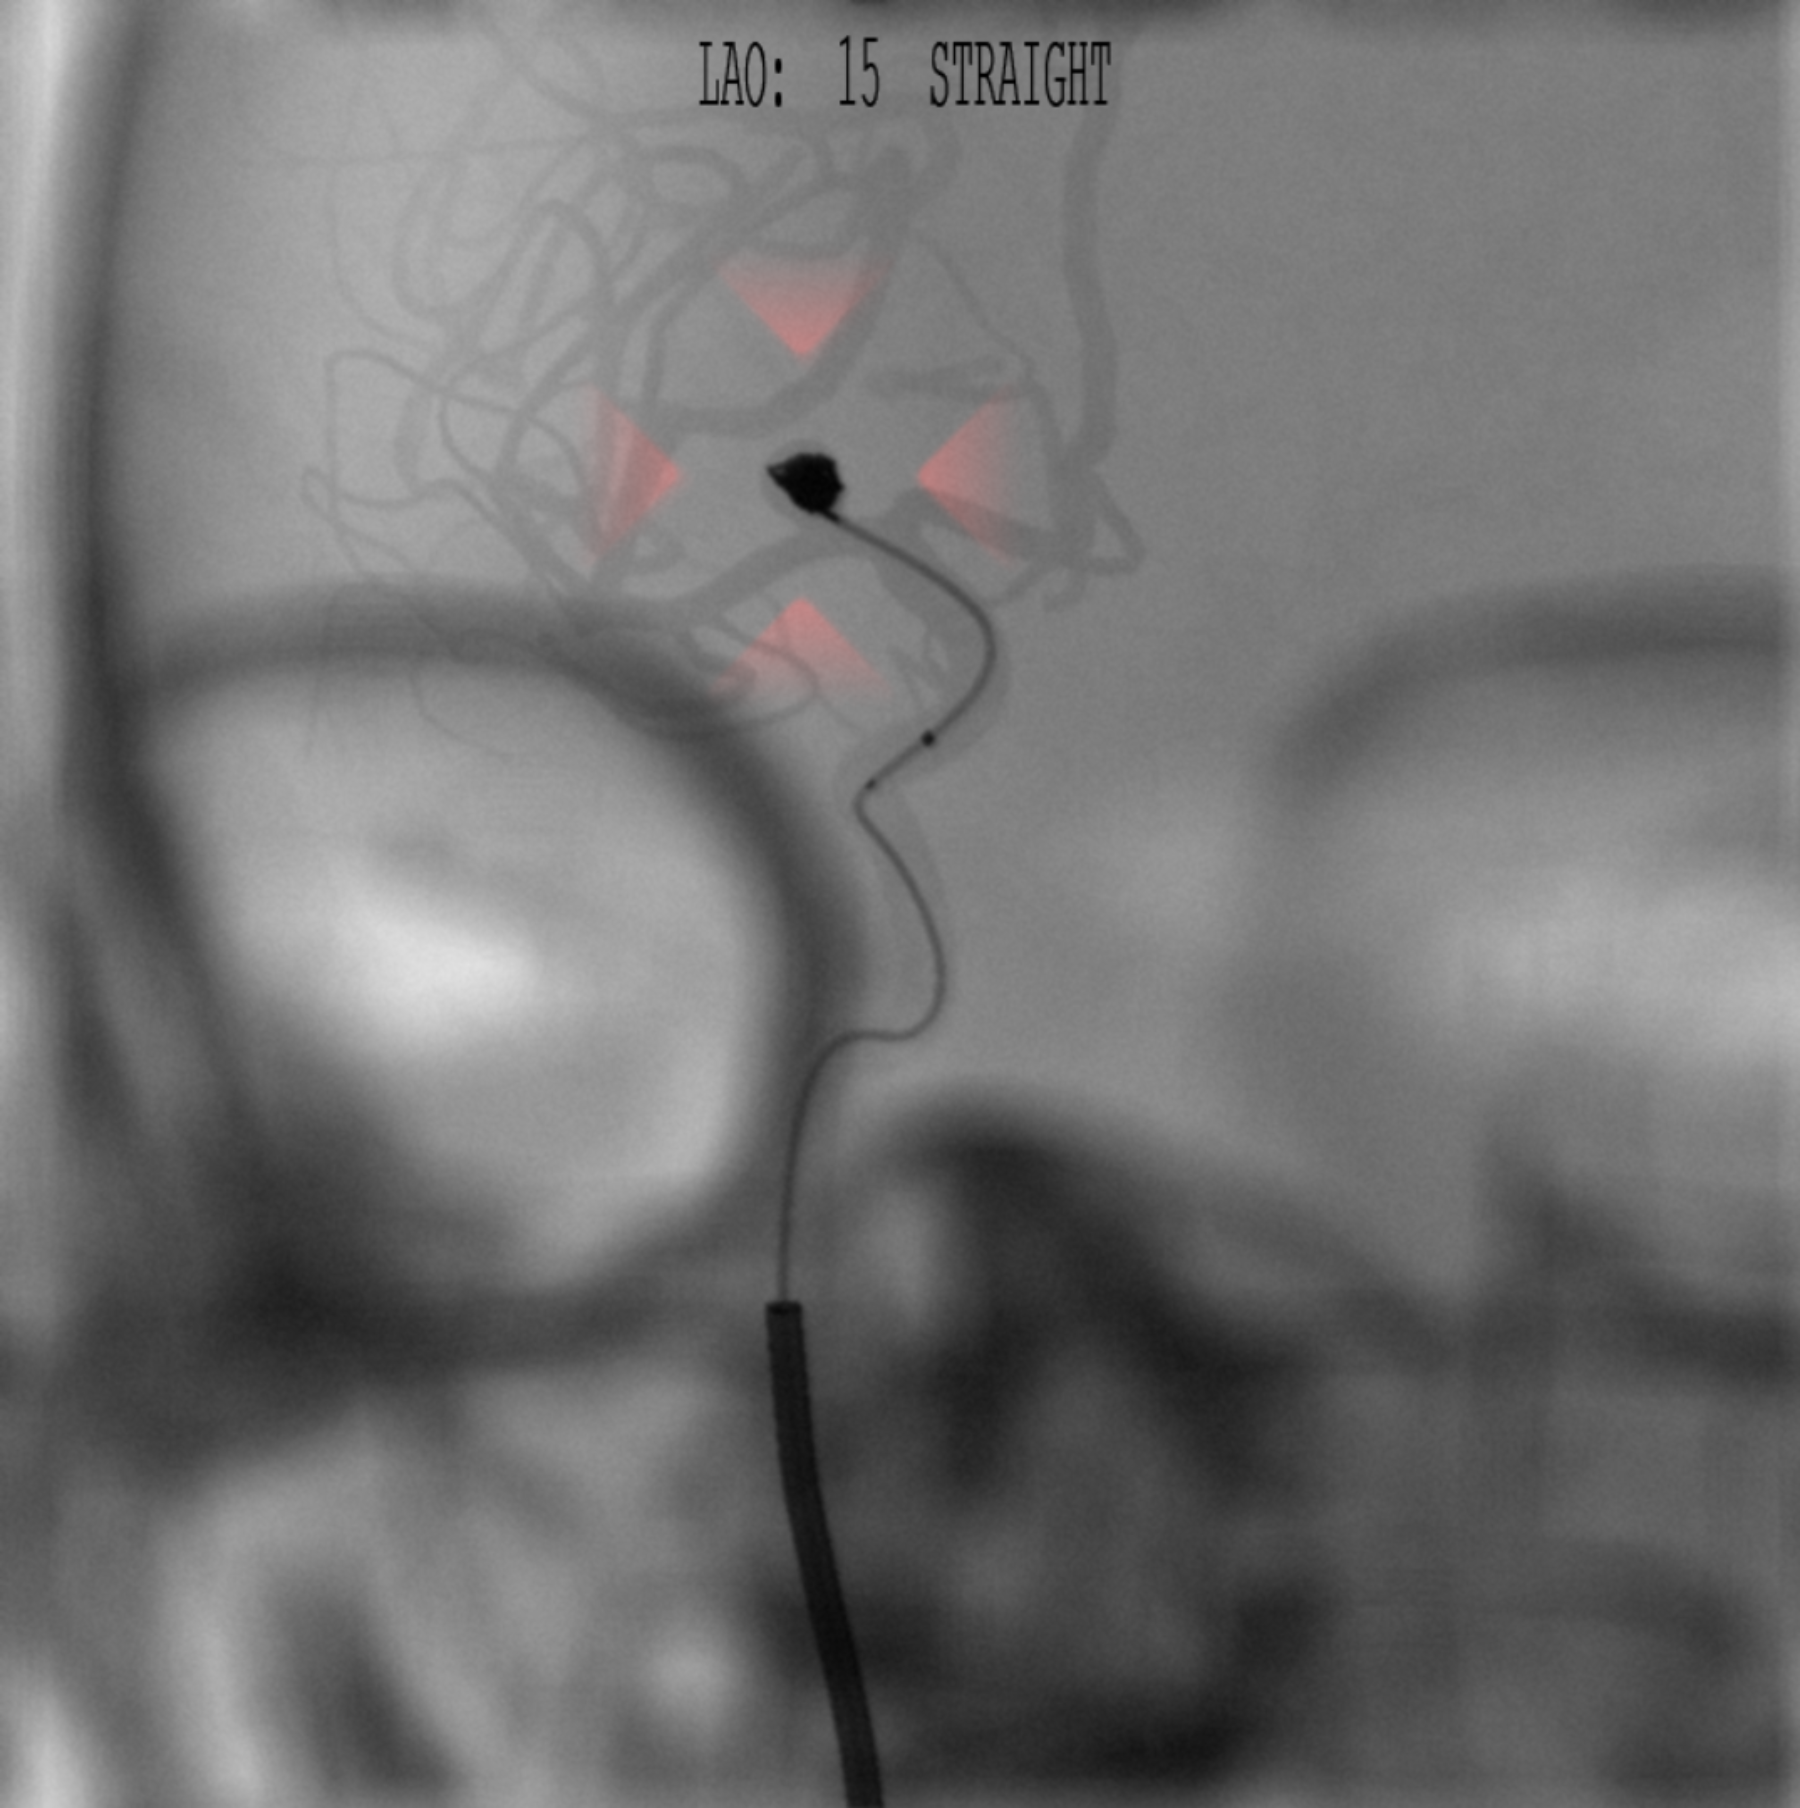 Intracranial aneurysm embolization